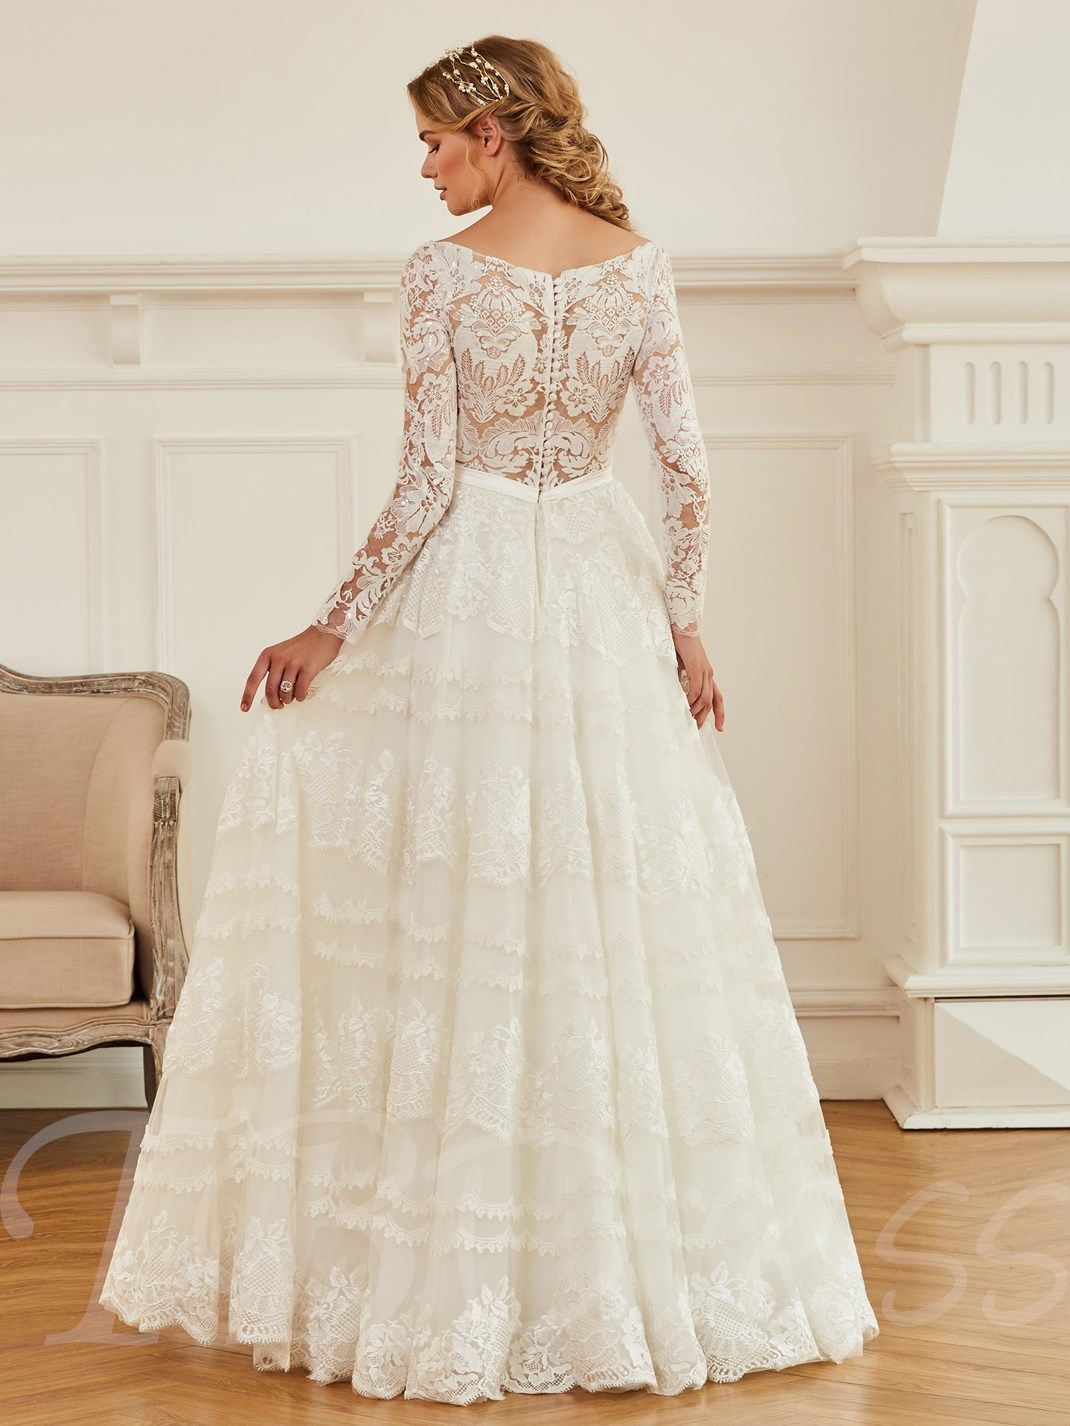 Buttoned back vneck lace long sleeve wedding dress in